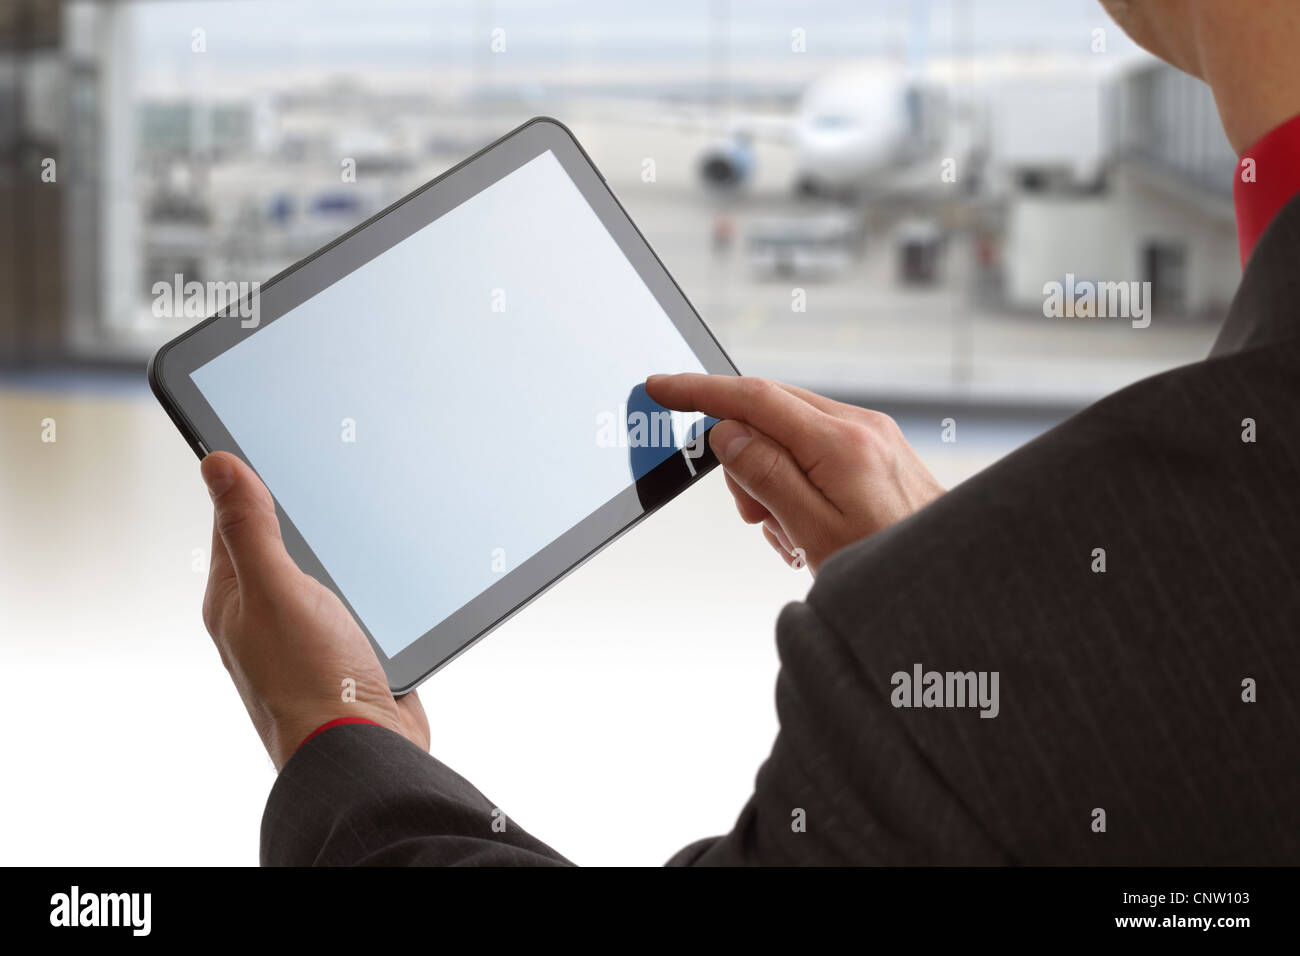 Digital tablet at airport - Stock Image